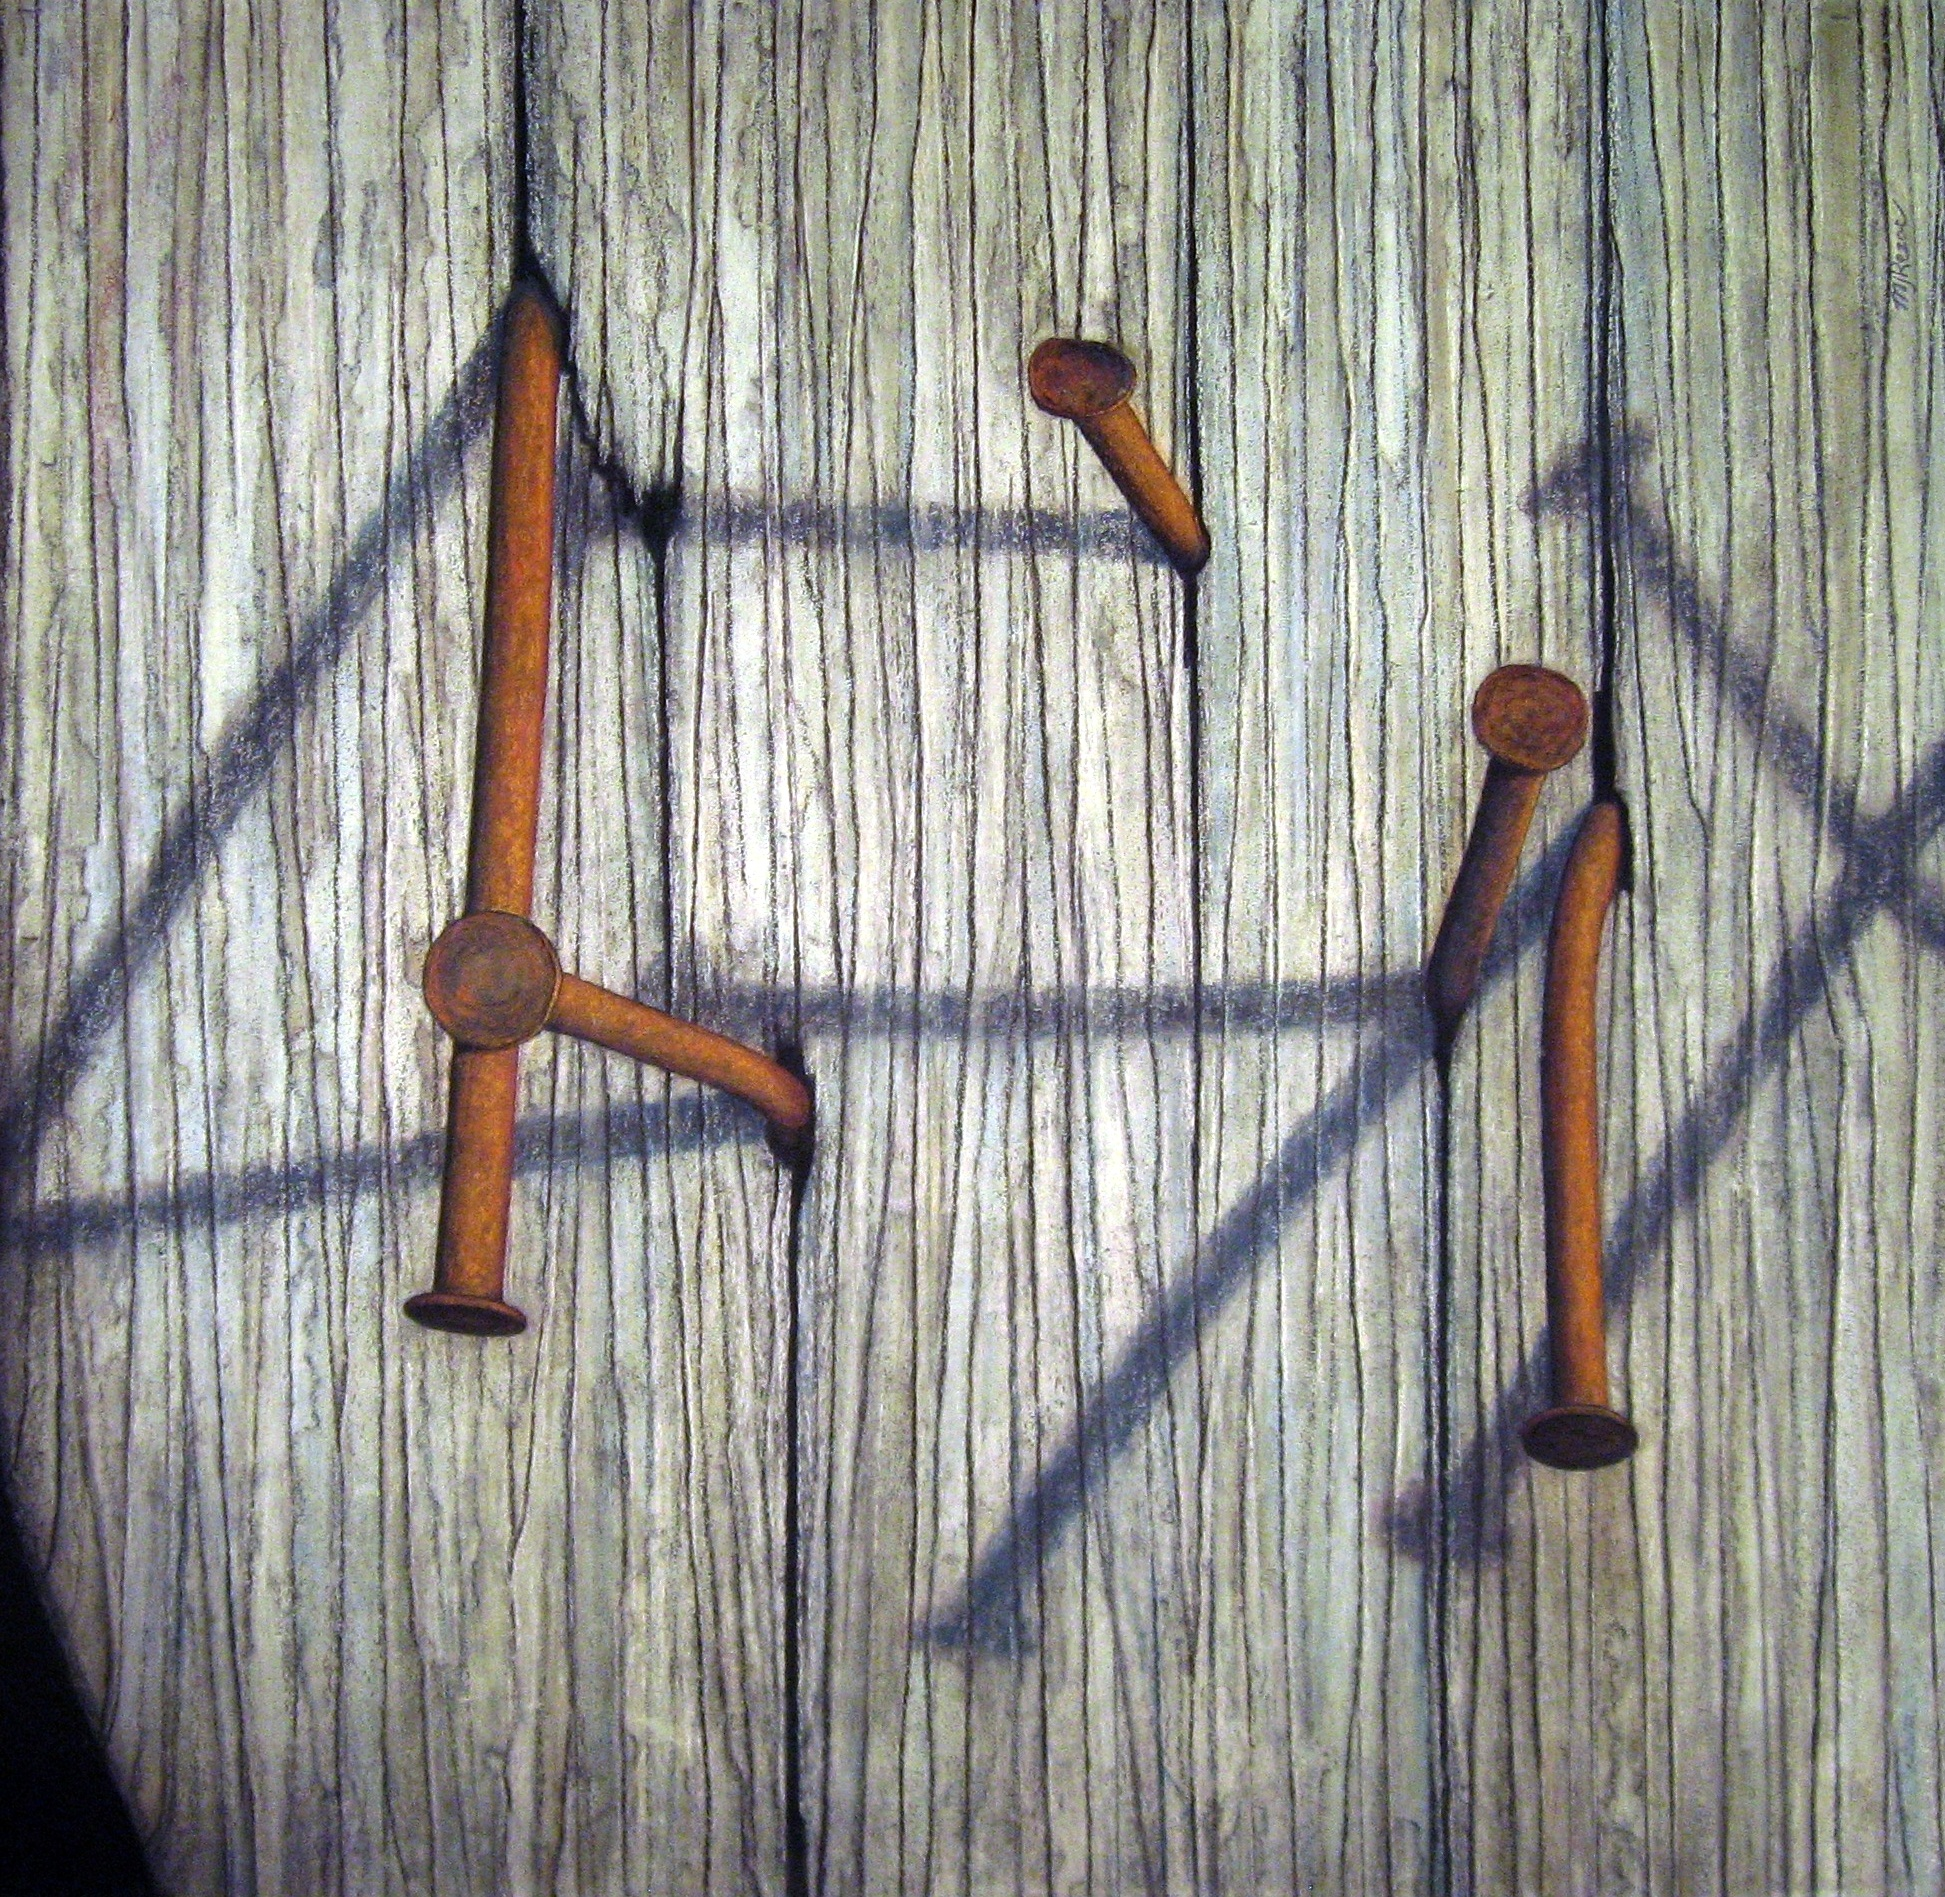 Eight Nails, 30x30, 2012